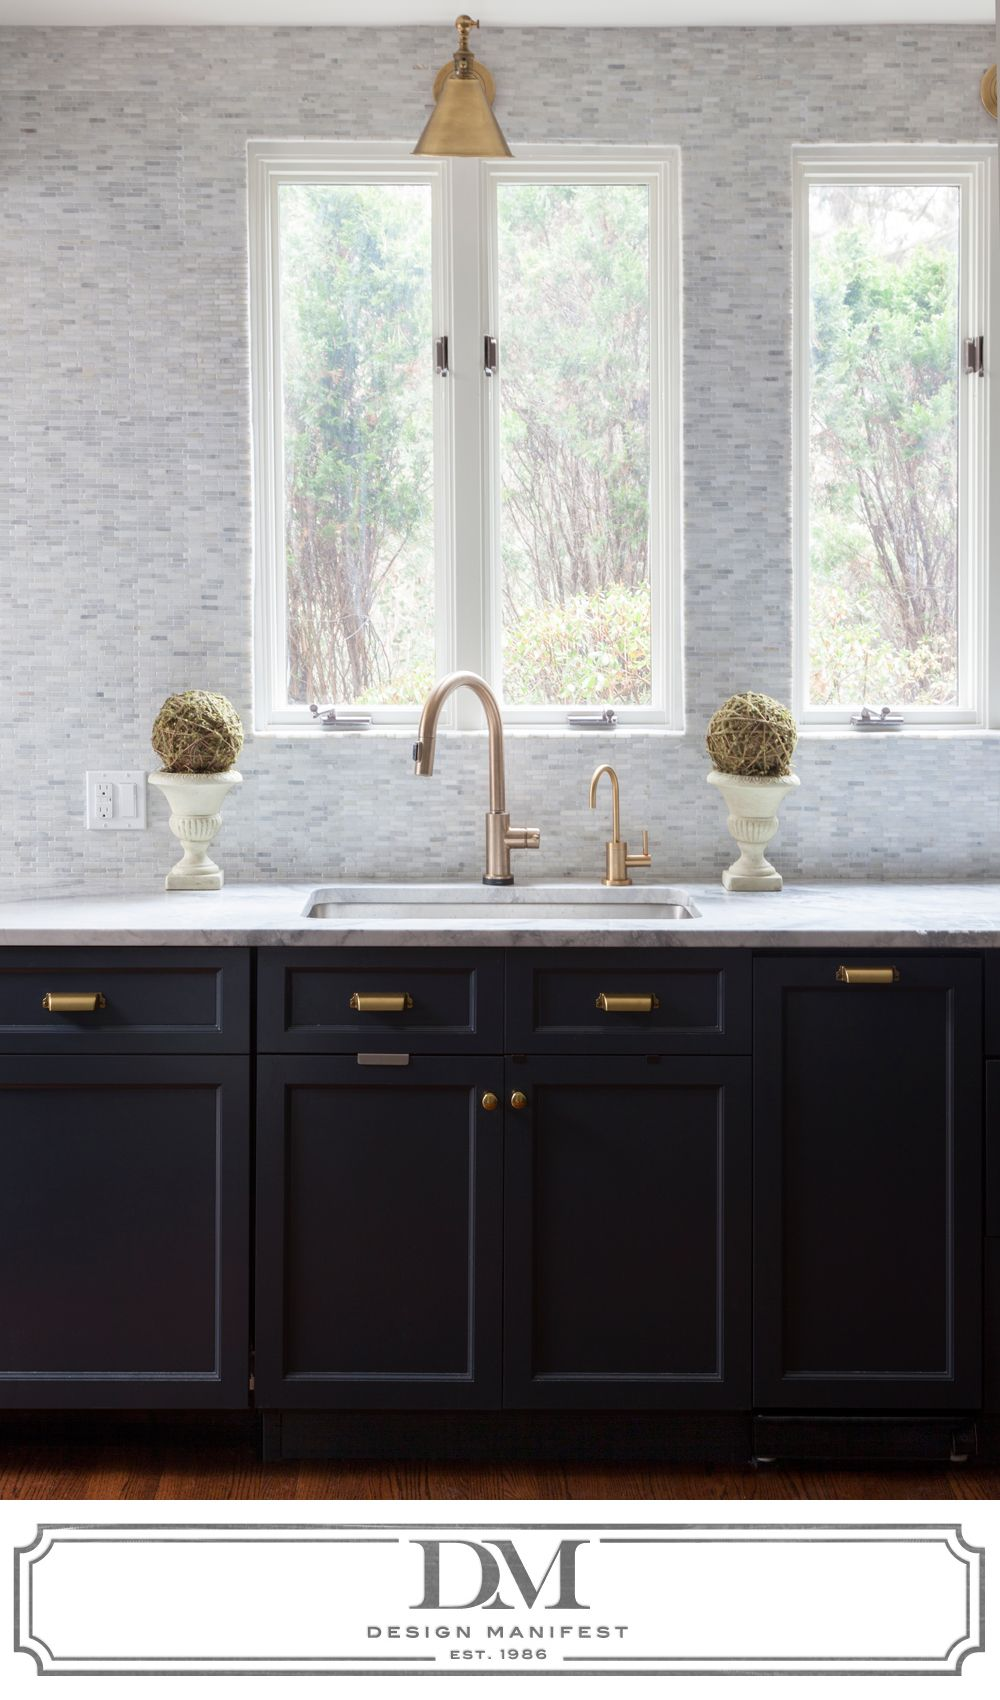 Kitchen window over sink  tumbled marble backsplash tile all the way up the wall sconce over